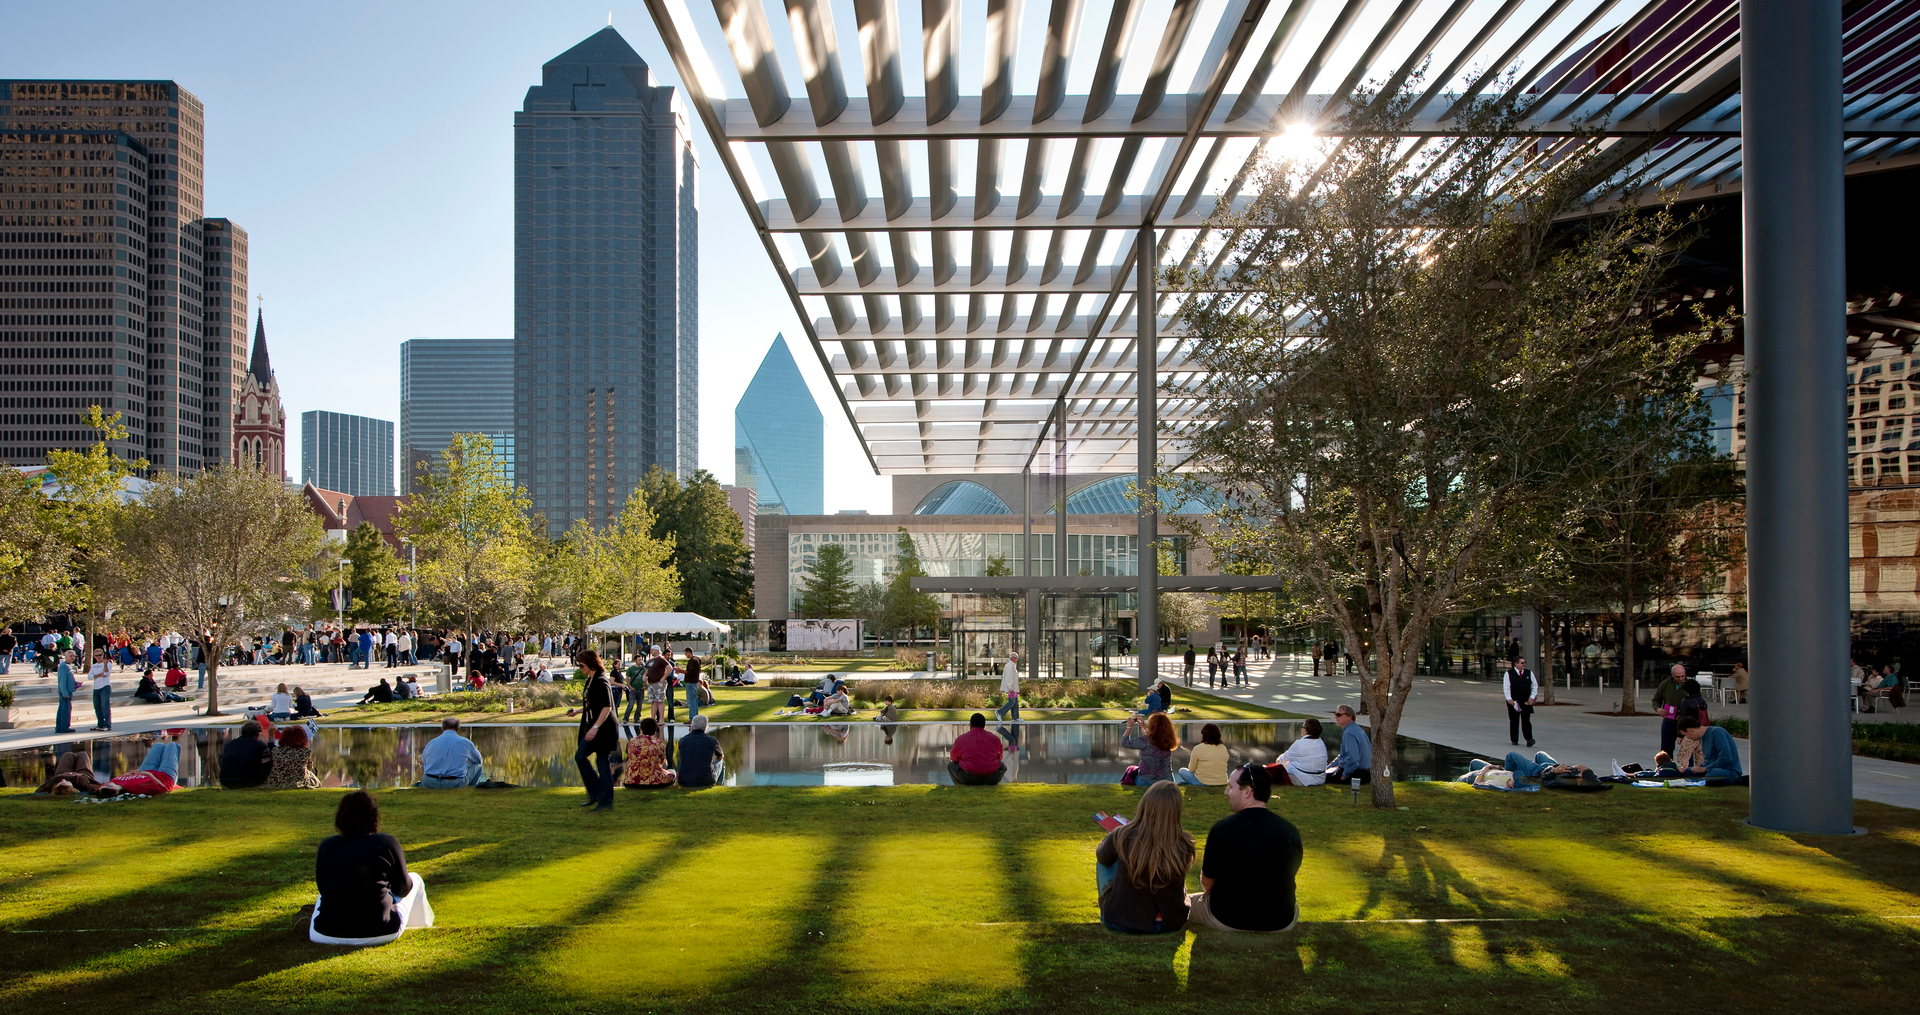 Dallas Arts District